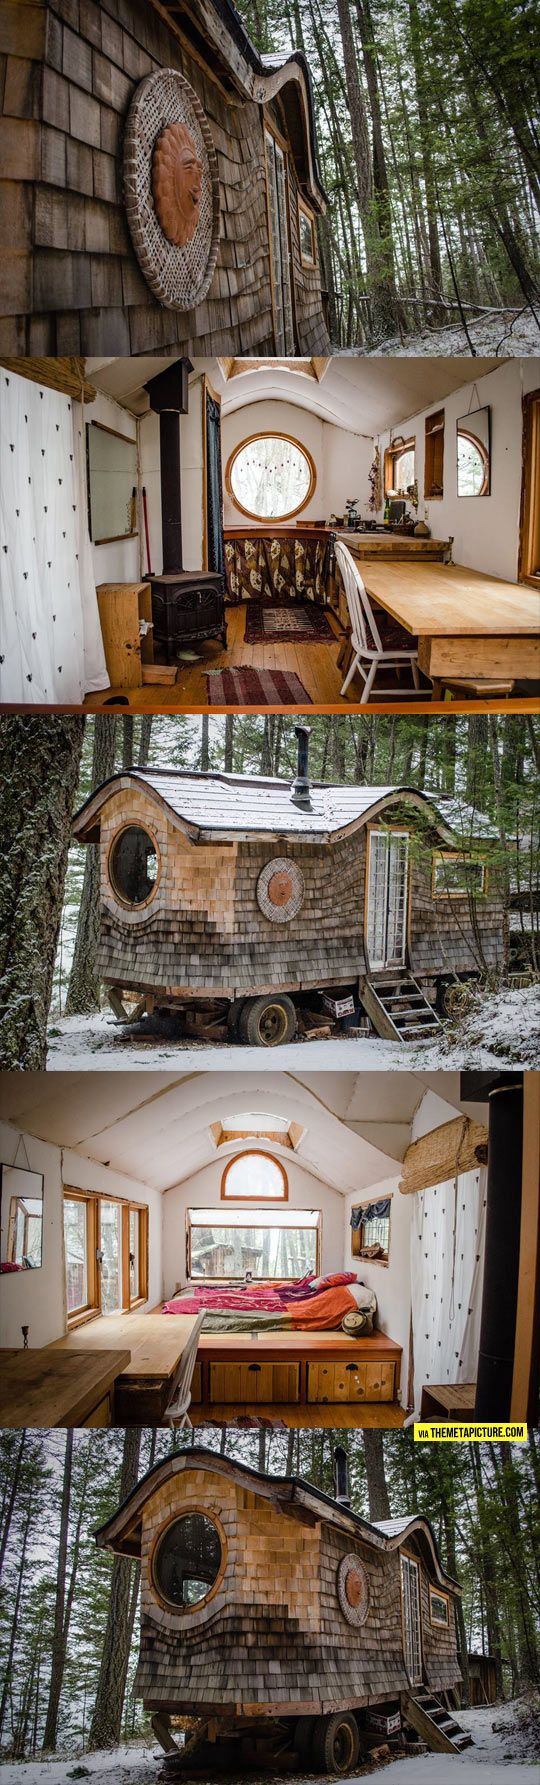 My Dream tiny house! Now if only I could get this on wheels.....